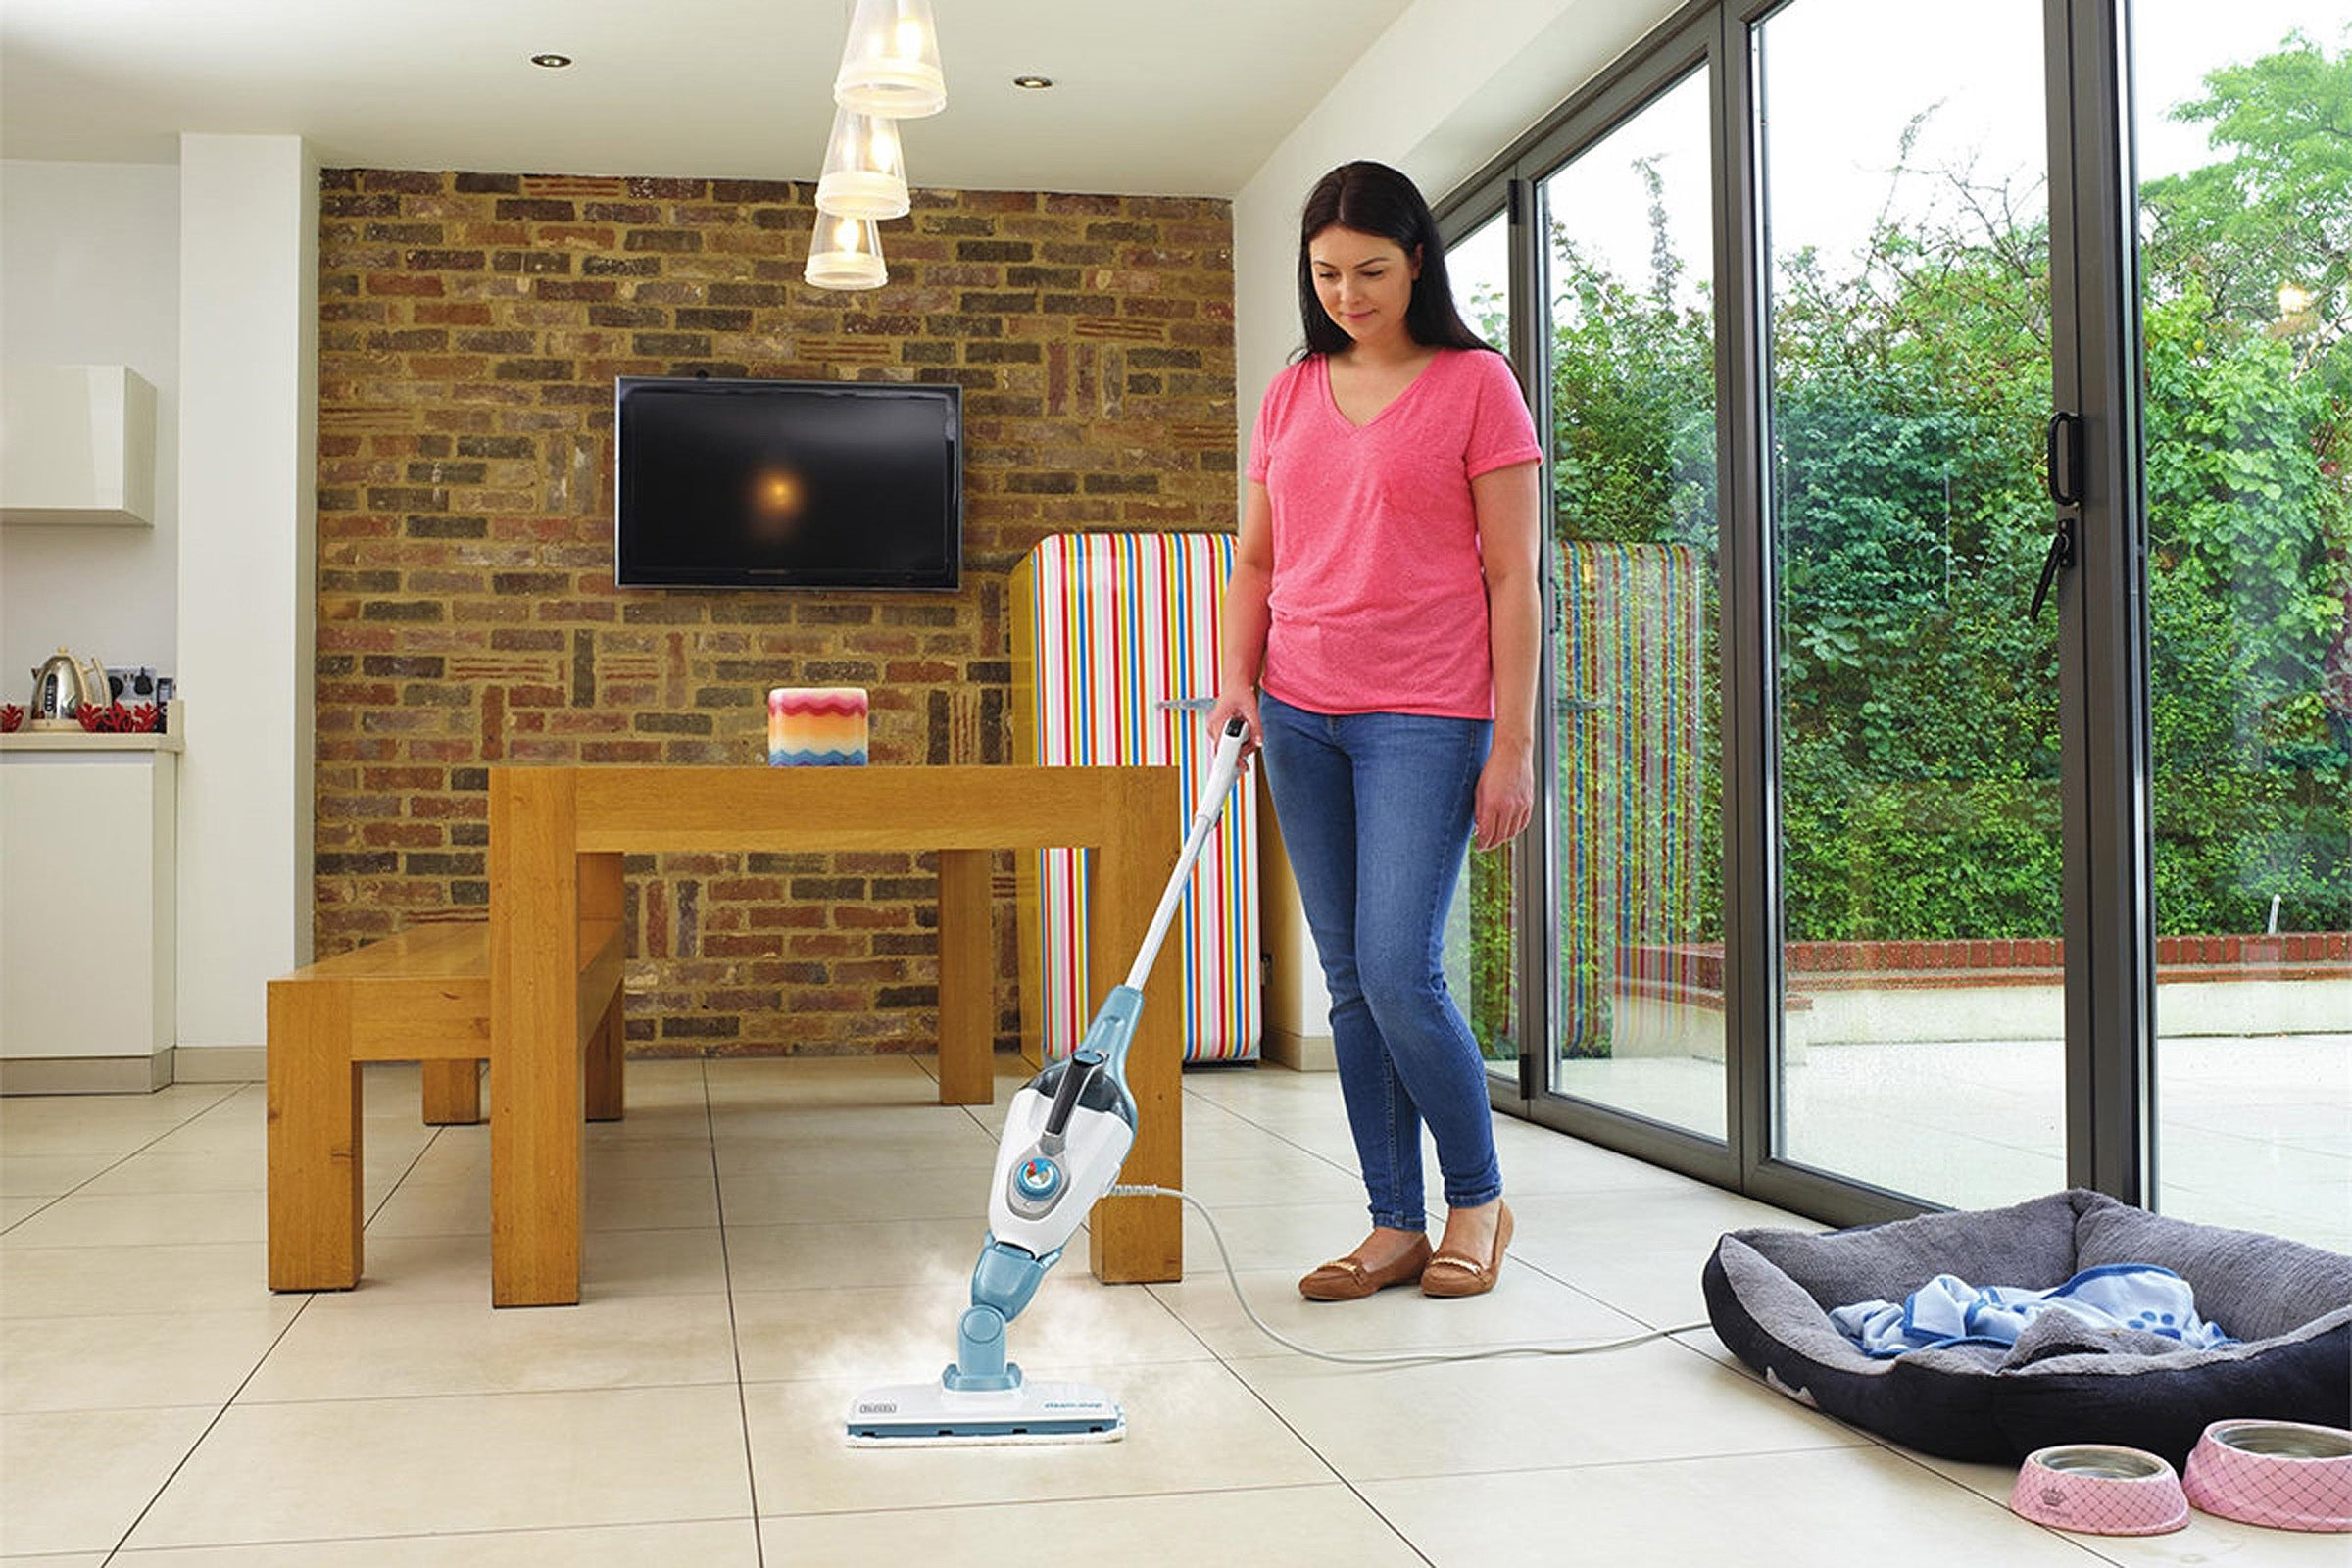 Best Steam Cleaners 2018 The Best For Carpet Tiles Floors And